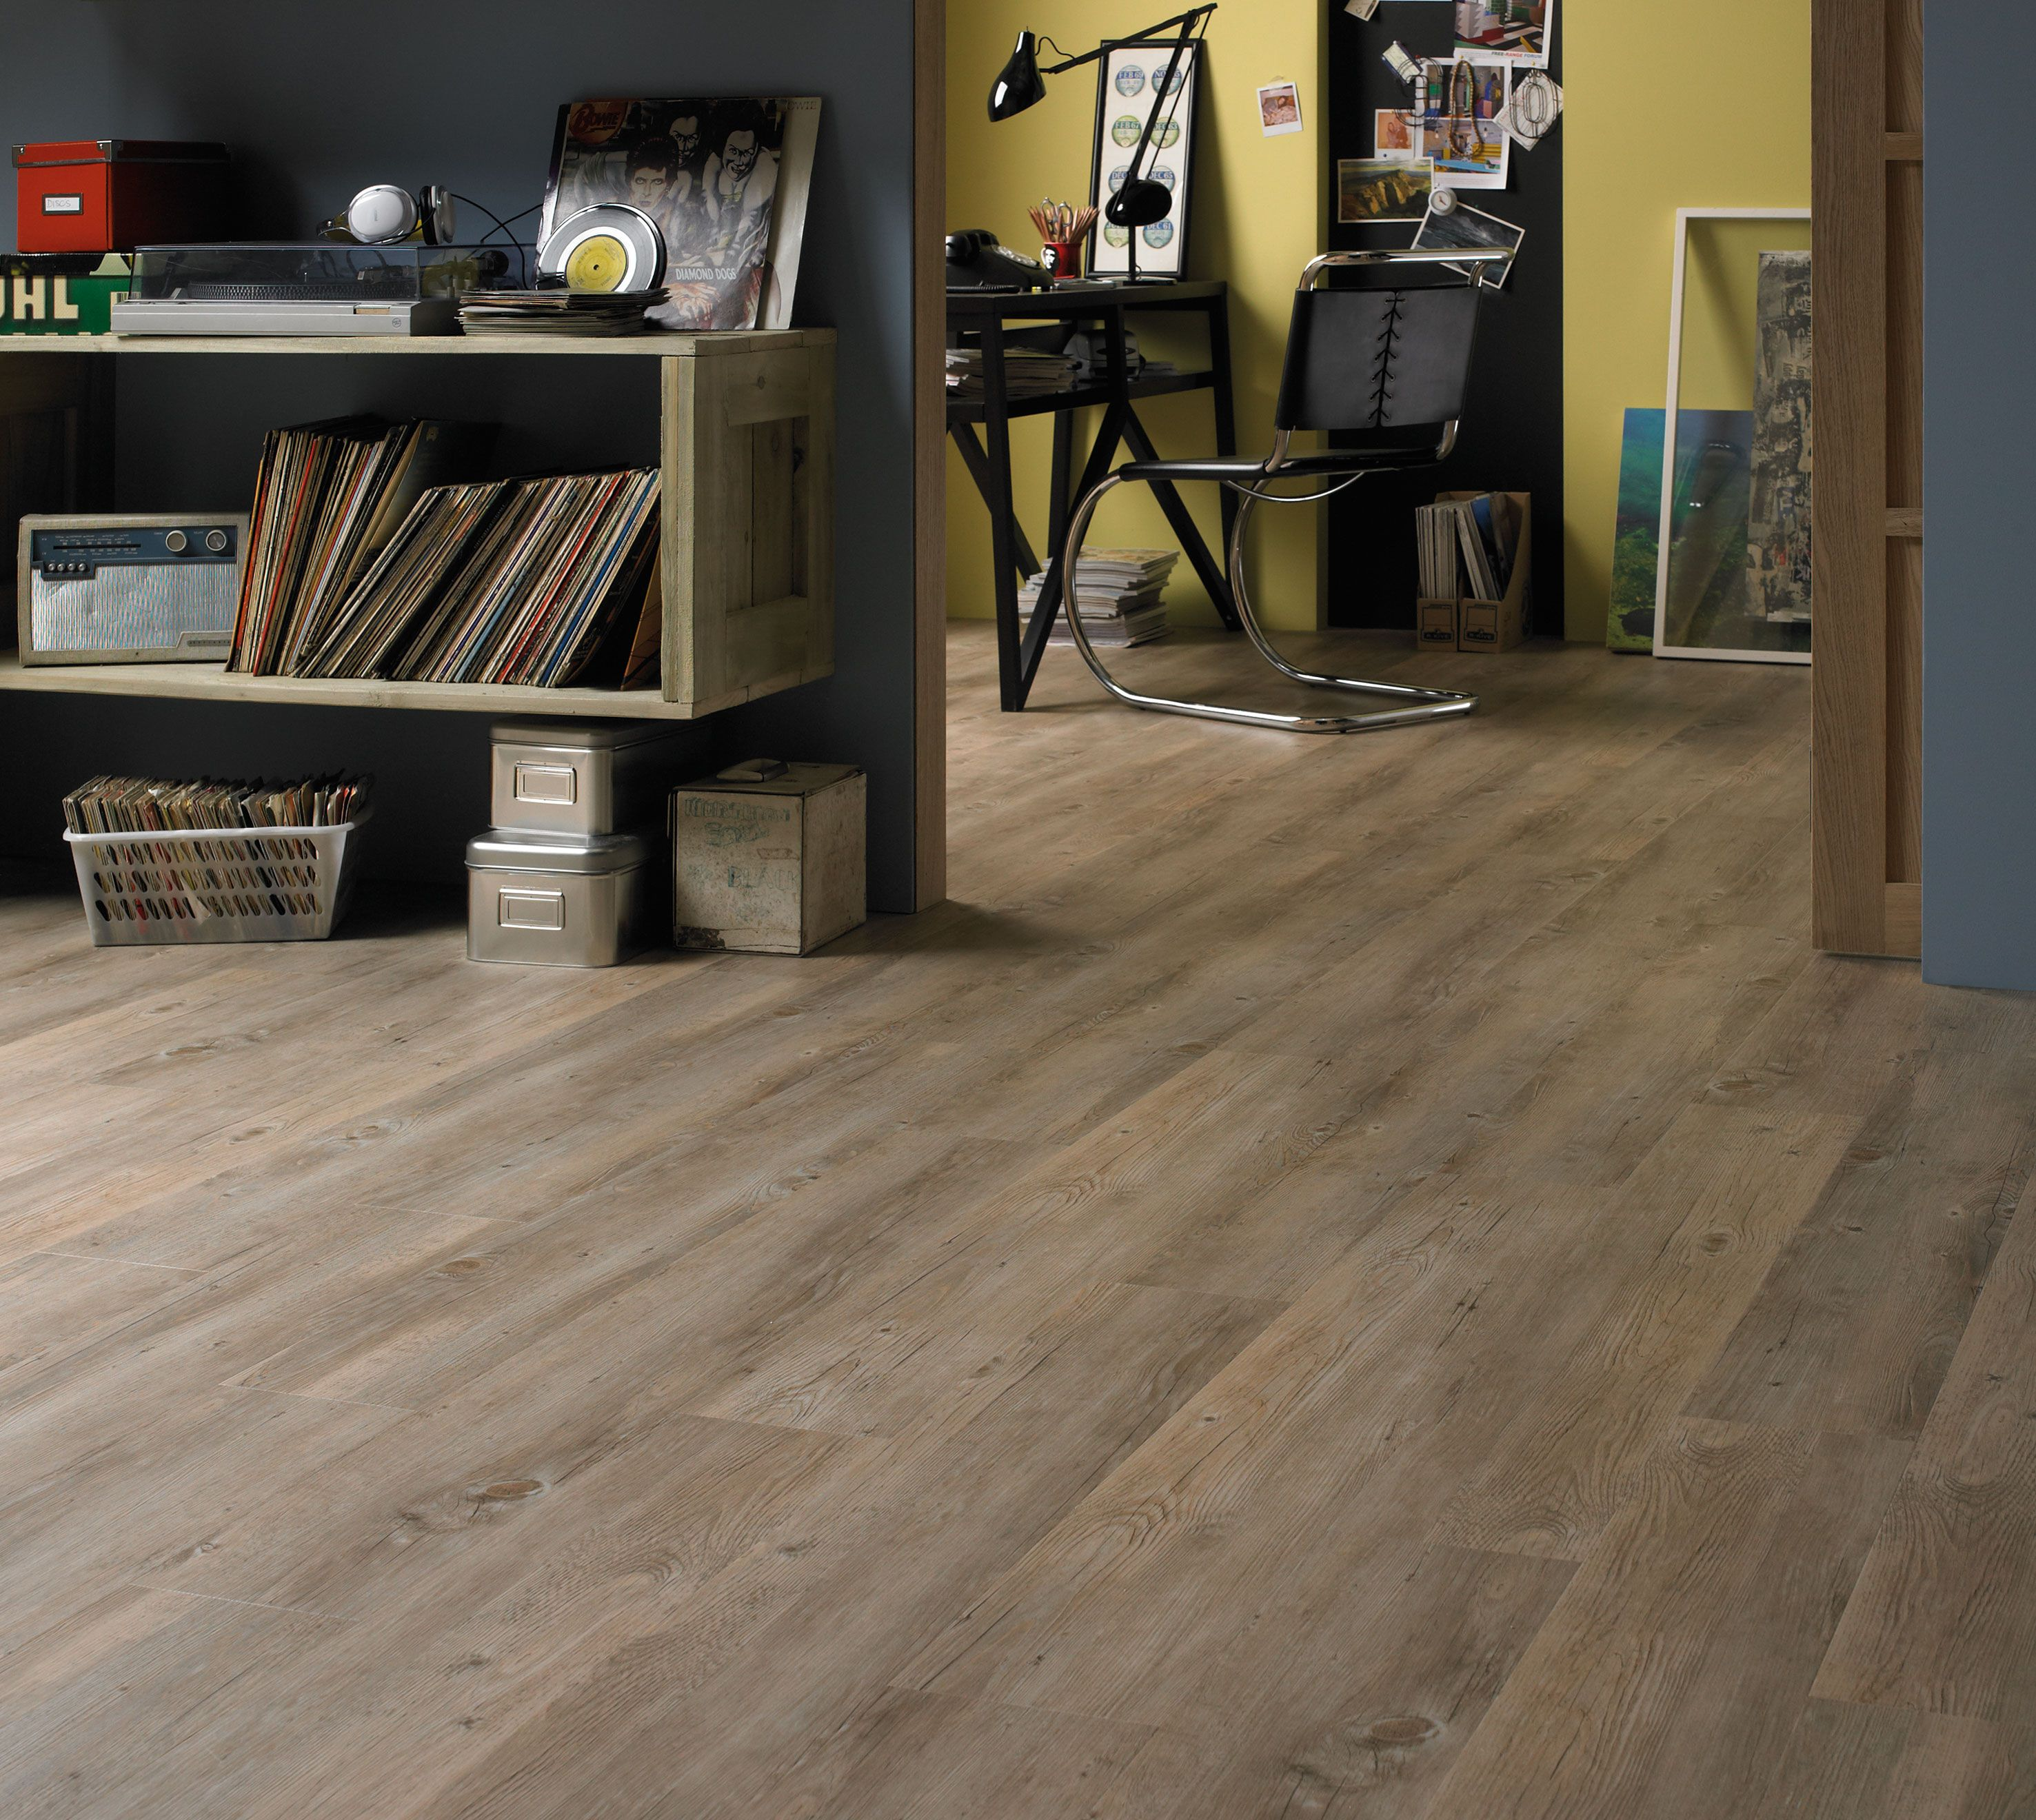 light widest pin something tulsa by tile prices of at everyone walls range woodwith floor paint affordable karndean flooring s planks there textures for knight prosource ensures fronts the pinterest on